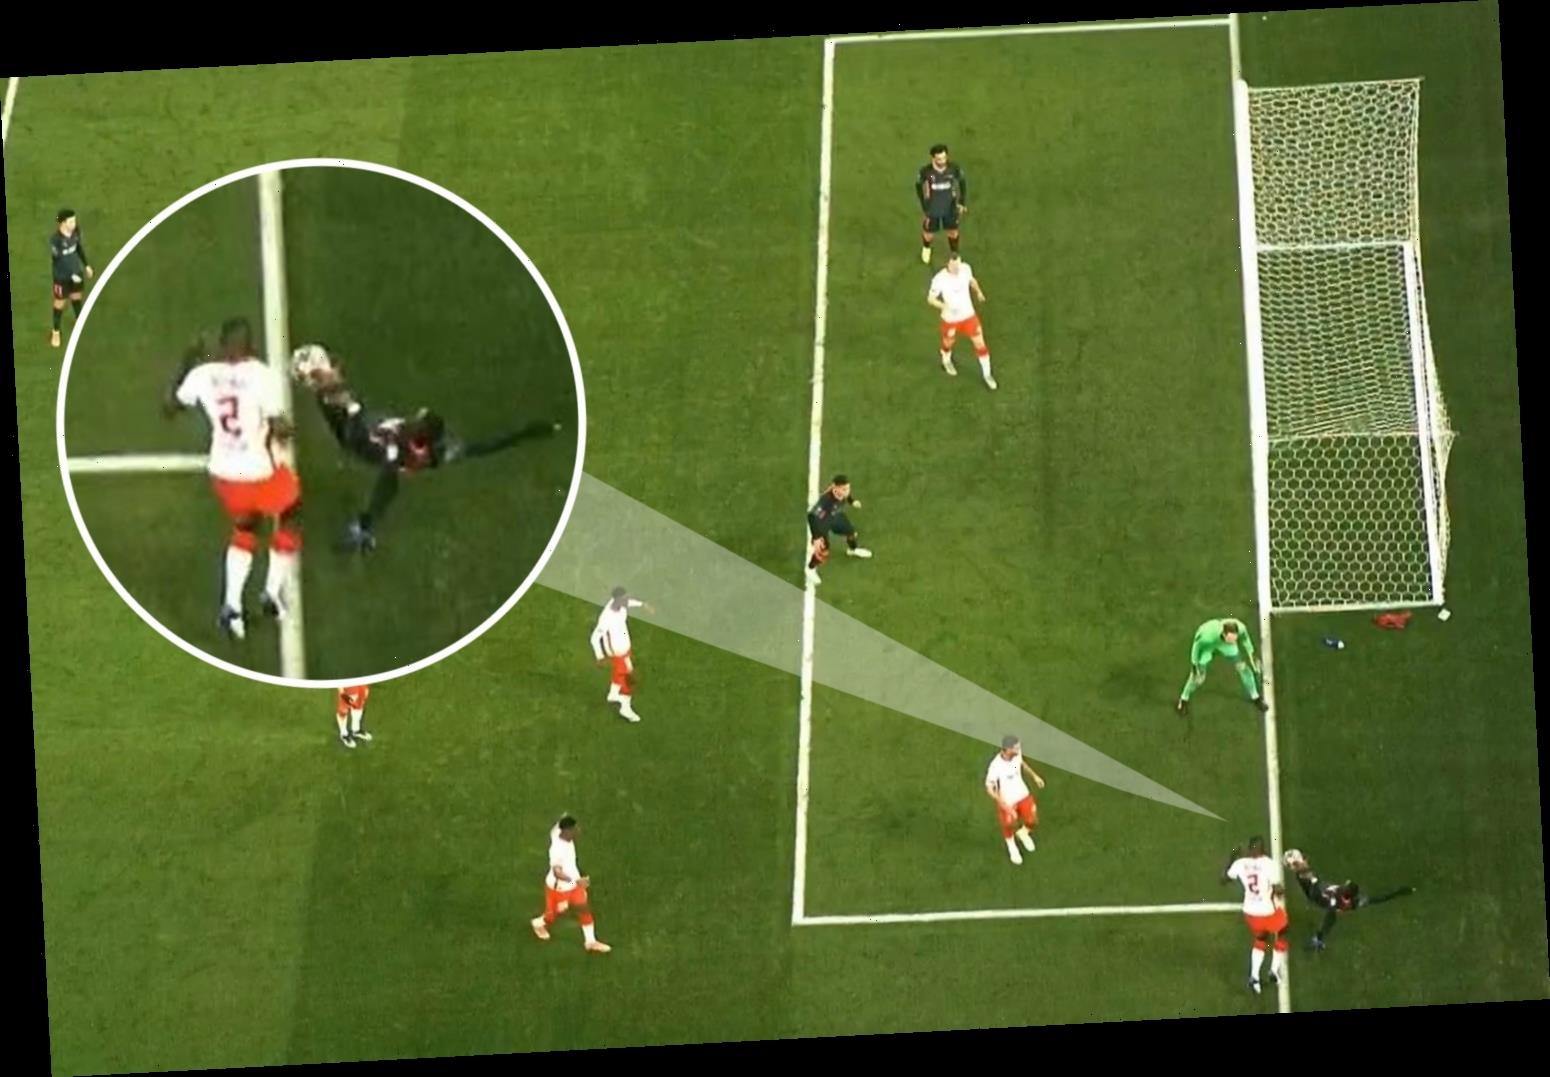 Liverpool denied opener against RB Leipzig as linesman rules ball went out of play before Sadio Mane cross